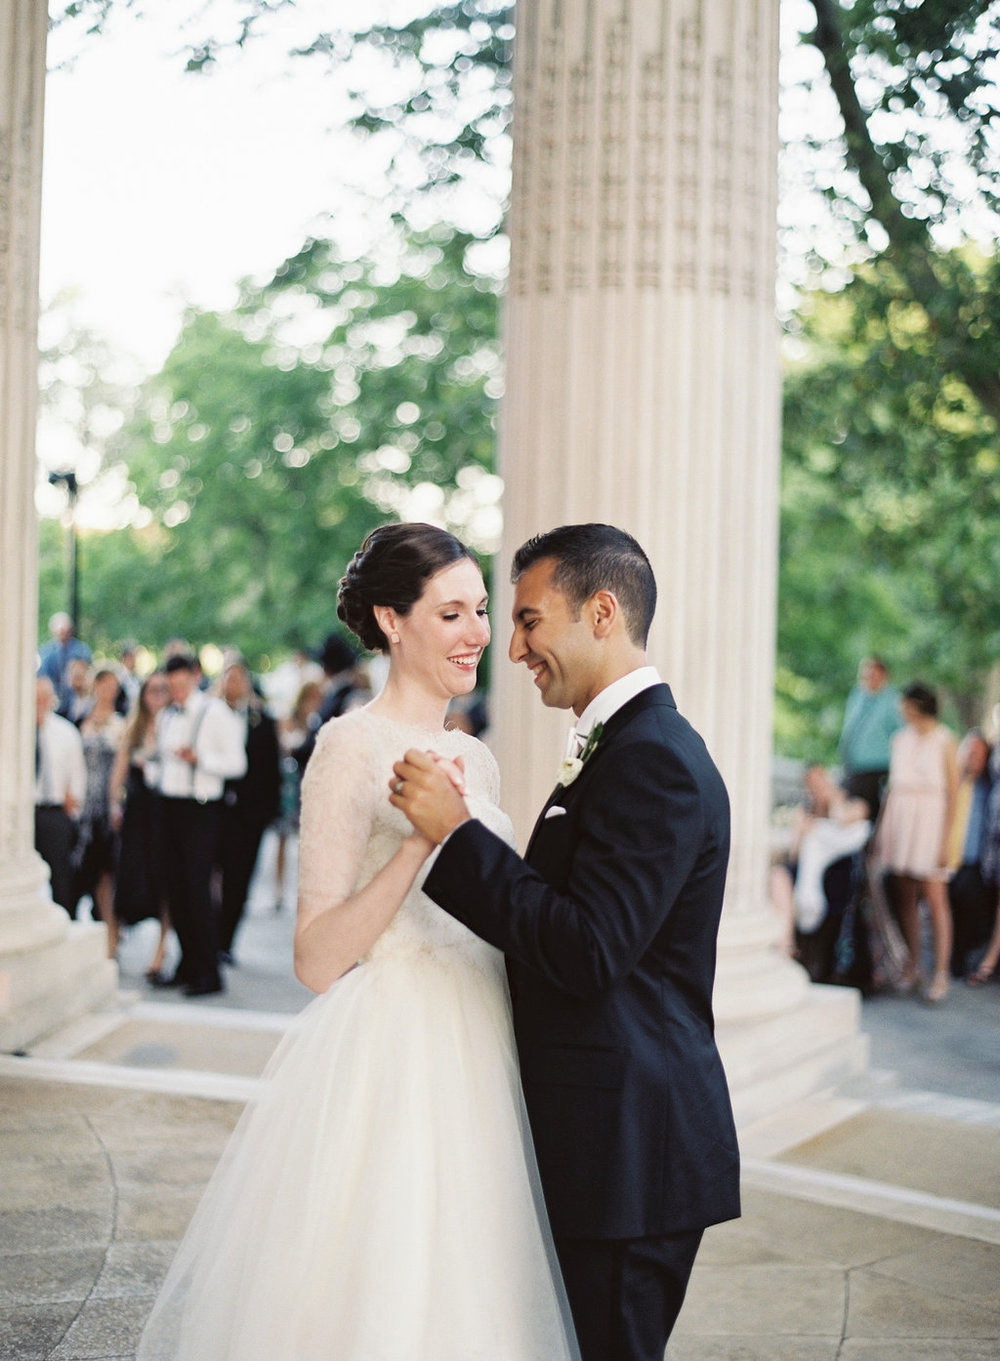 DAR Wedding | DC Fine Art Film Wedding Photographer